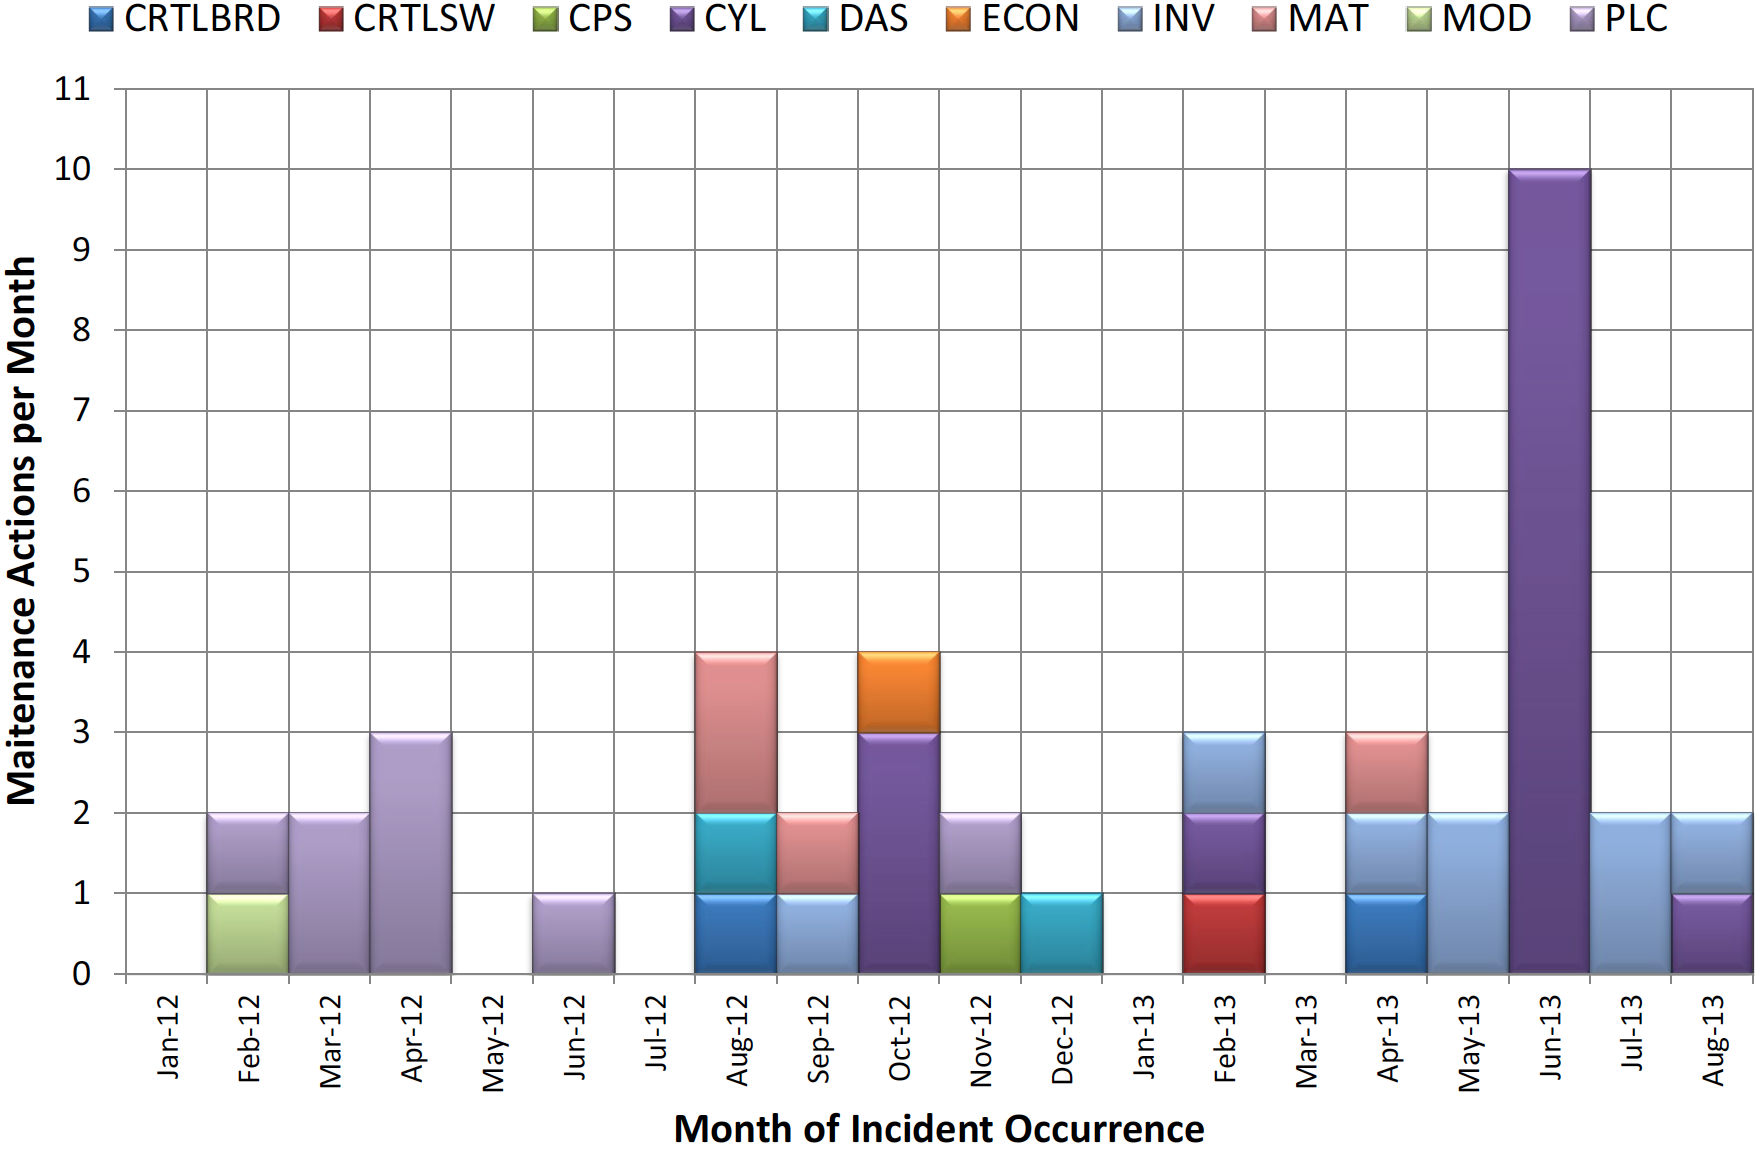 "Total Maintenance Actions per Component.  This ""button"" chart shows the total number of maintenance actions across all system components per month. Color coding is used to differentiate each component. [Note: CTRLBRD = Inverter Control Board; CRTLSW = Inverter Control Software; CPS = Inverter Control Power Supply; CYL = hydraulic cylinder; DAS = Data Acquisition System; ECON = Misc. Electrical Devices, Cables, Connectors; INV = Inverter; MAT = Inverter Matrix; MOD = PV Module; PLC = Programmable Logic Controller.]"